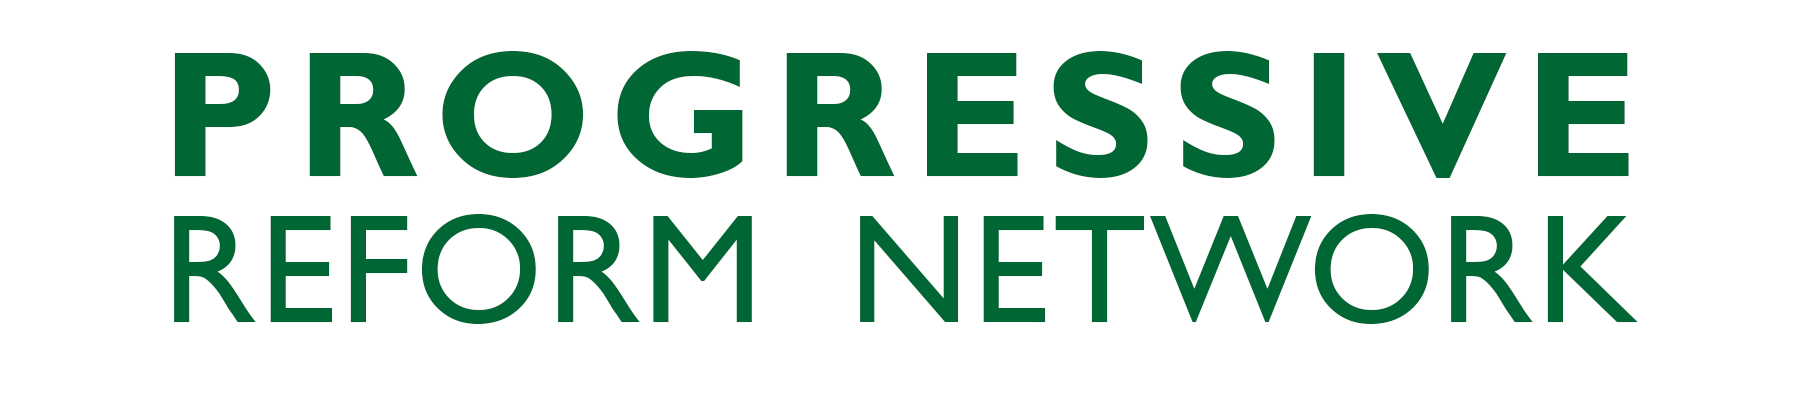 Progressive Reform Network